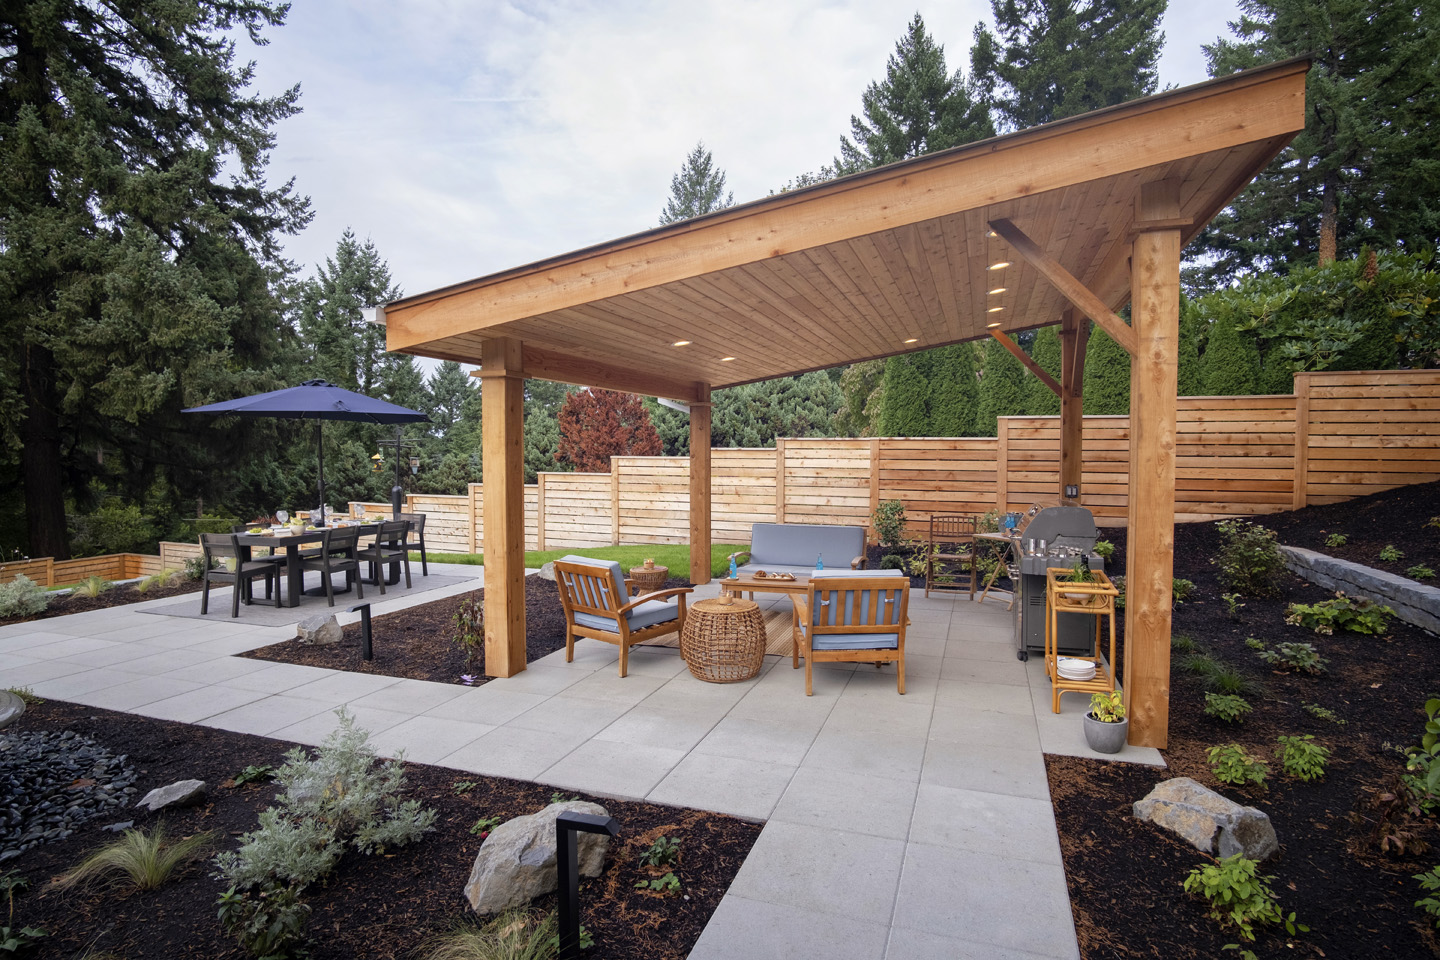 Lean-to covered structure in outdoor living